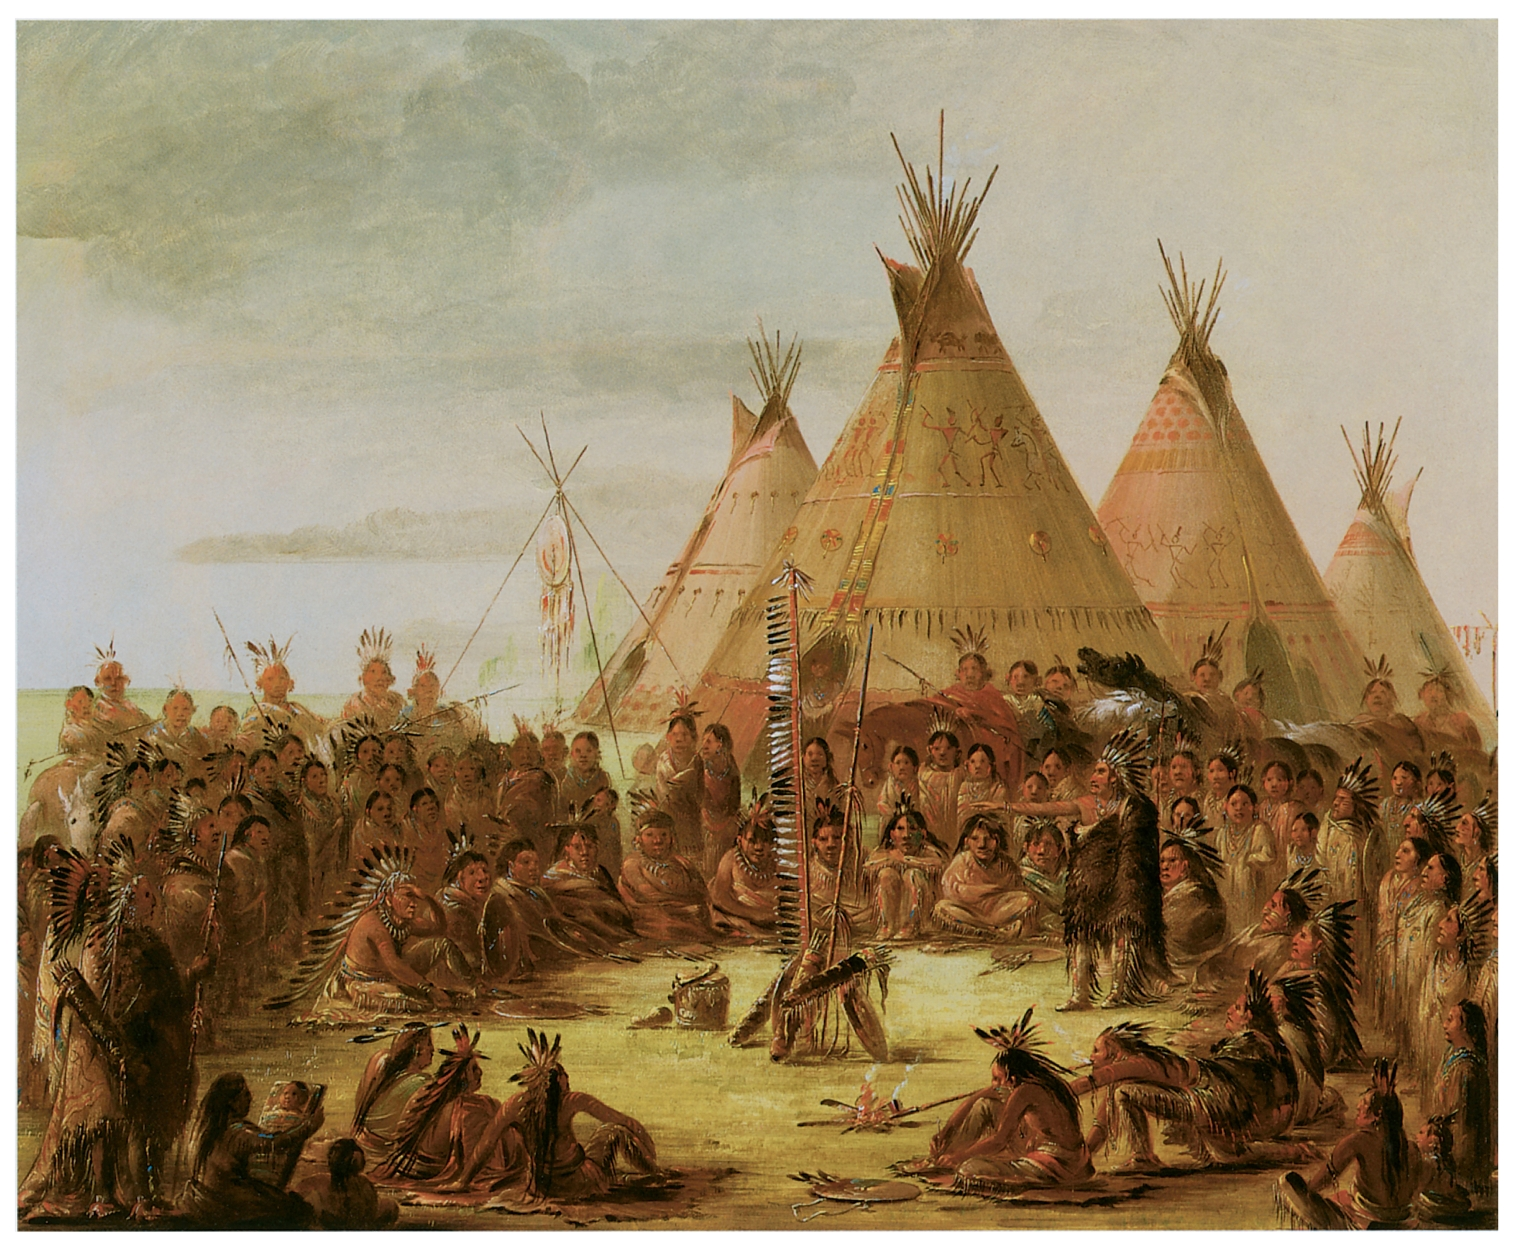 an analysis of the native americans rituals Goals / objectives this research will dentify the strengths evident in strong marriages in the native american culture and identify educational methods to deliver.